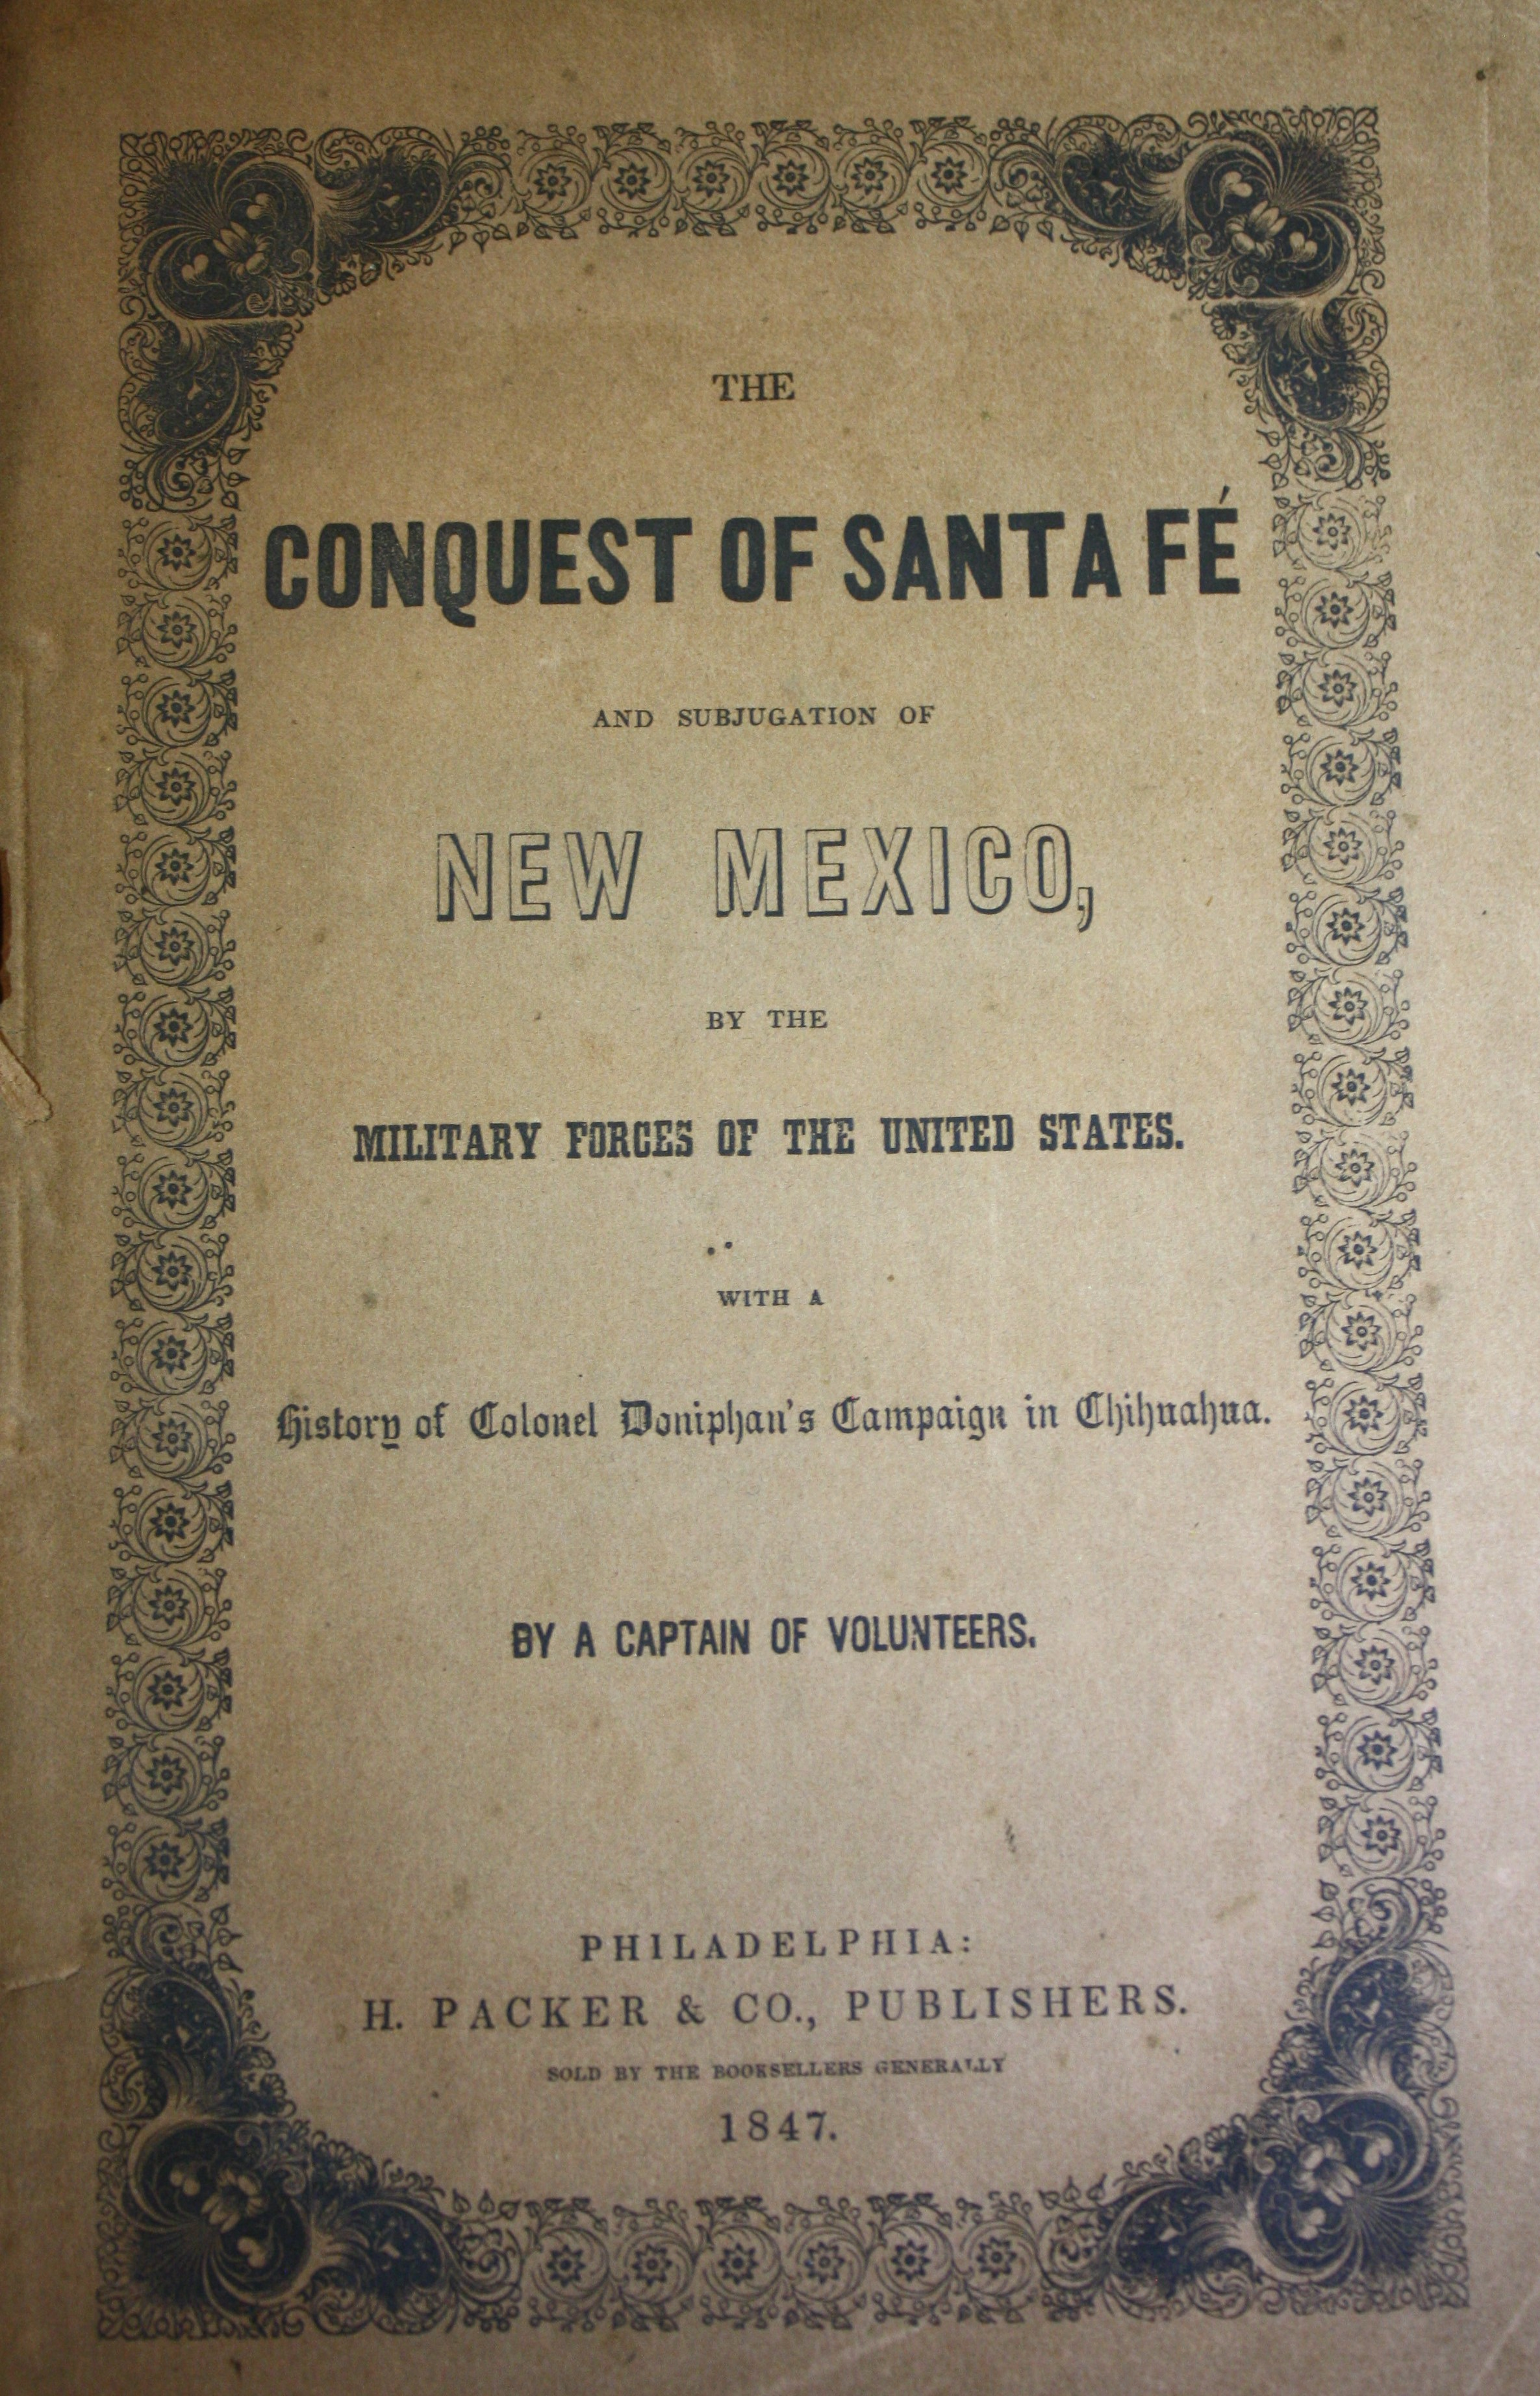 Image for The Conquest of Santa Fe and Subjugation of New Mexico by the Military Forces of the United States; with Documents, Embracing the Opinions of the Honourable Thomas H. Benton, Gen. Sam Houston, and others, in Reference to Annexation; and a History of Colonel Doniphan's Campaign in Chihuahua By a Captain of Volunteers.